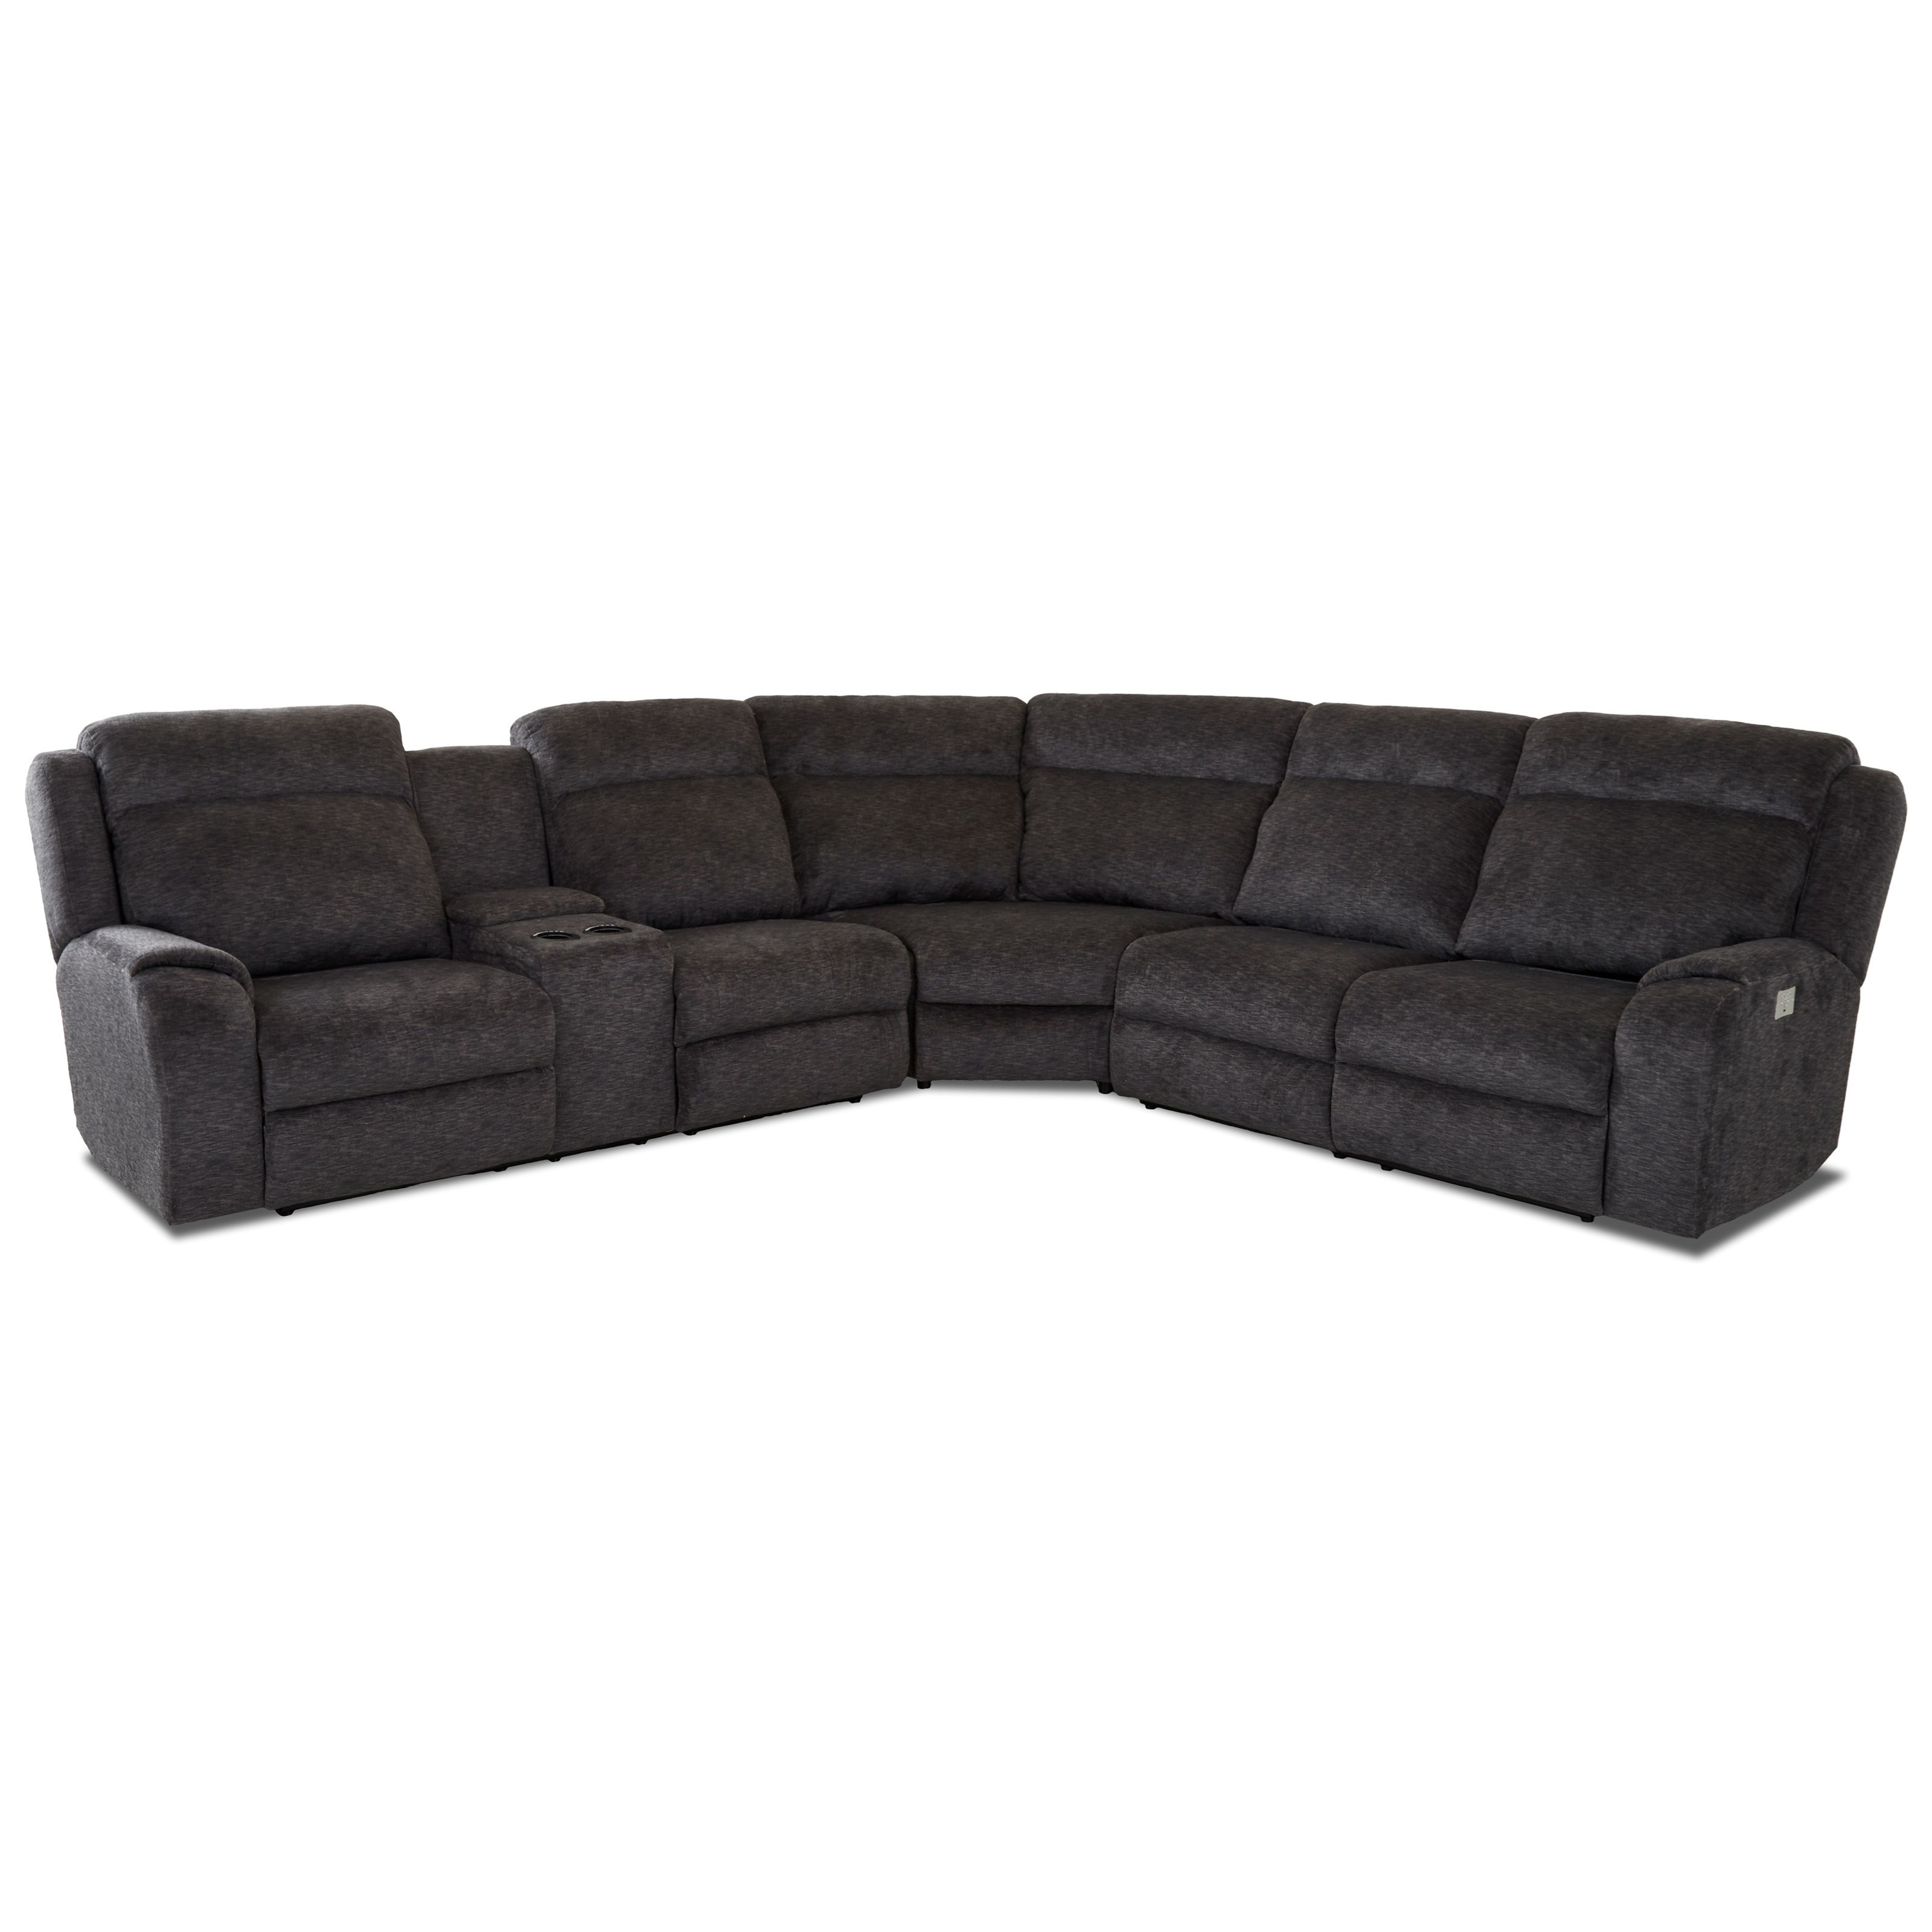 4 Seat Pwr Recl Sectional Sofa w/ Pwr Head